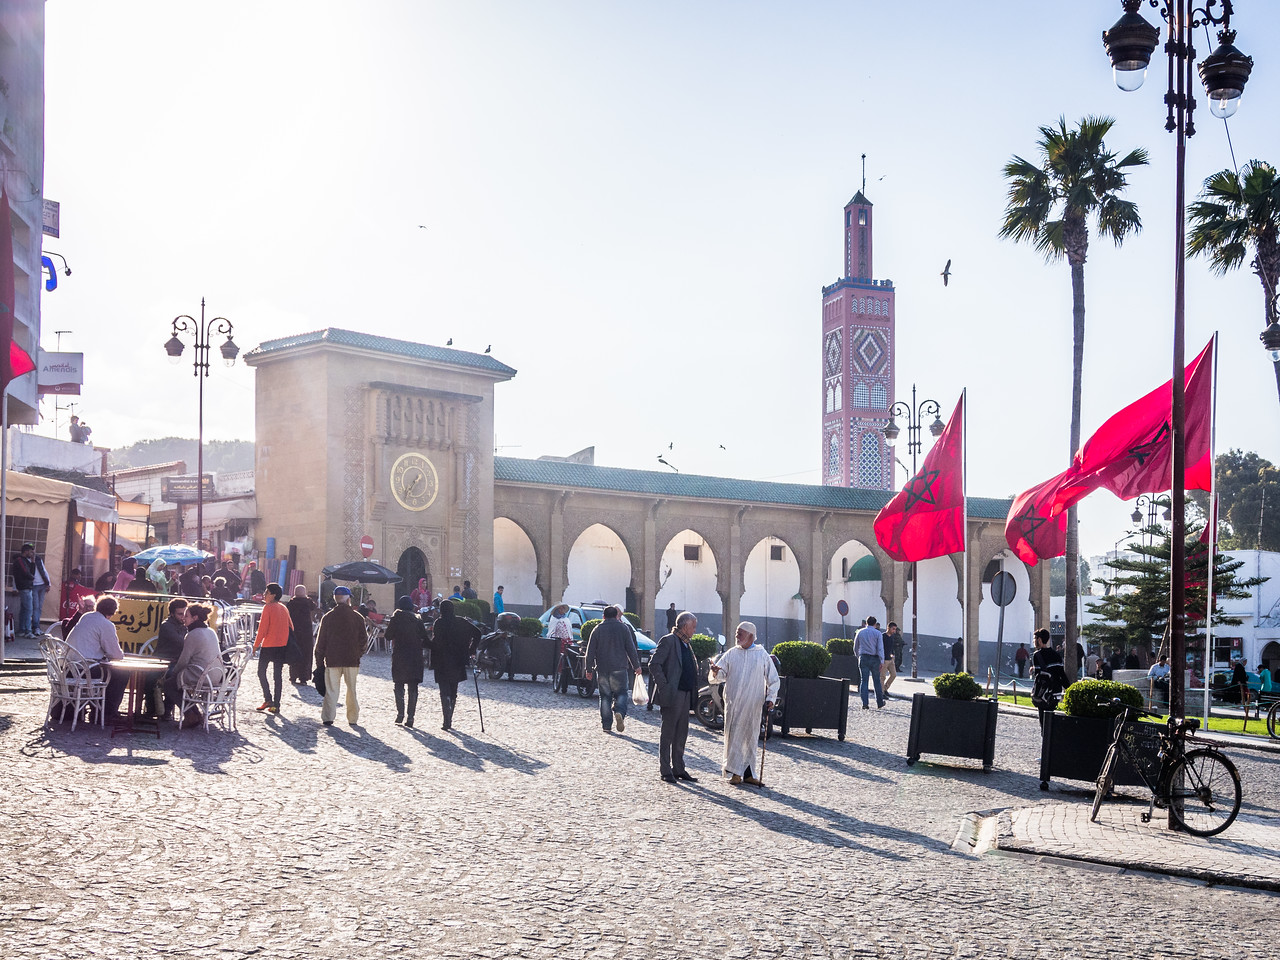 Outside the Mosque, Tangiers